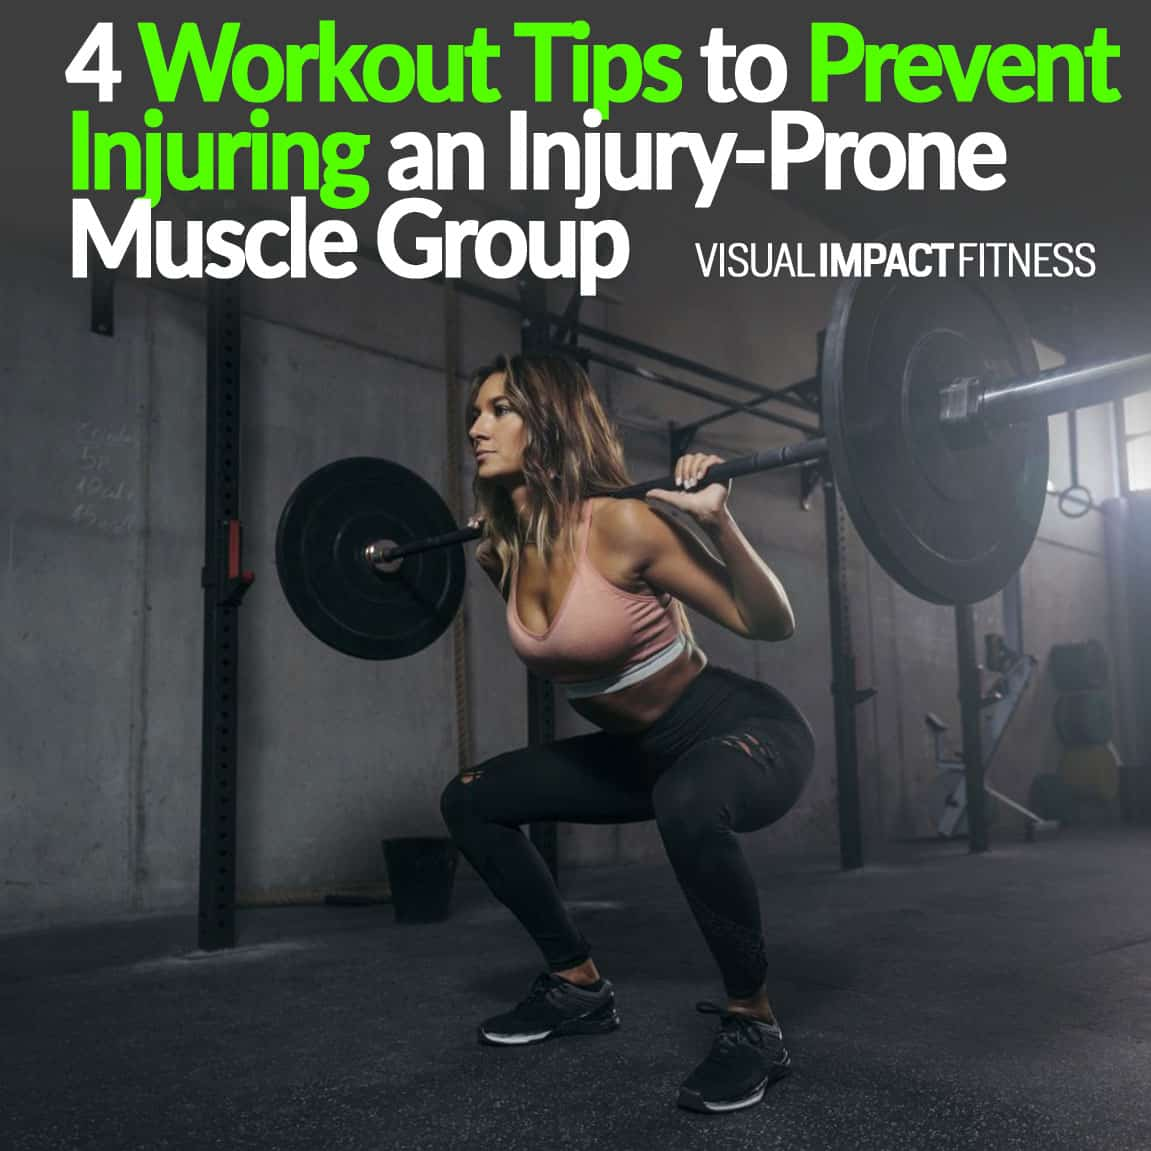 4 Workout Tips to Prevent Injuring an Injury-Prone Muscle Group